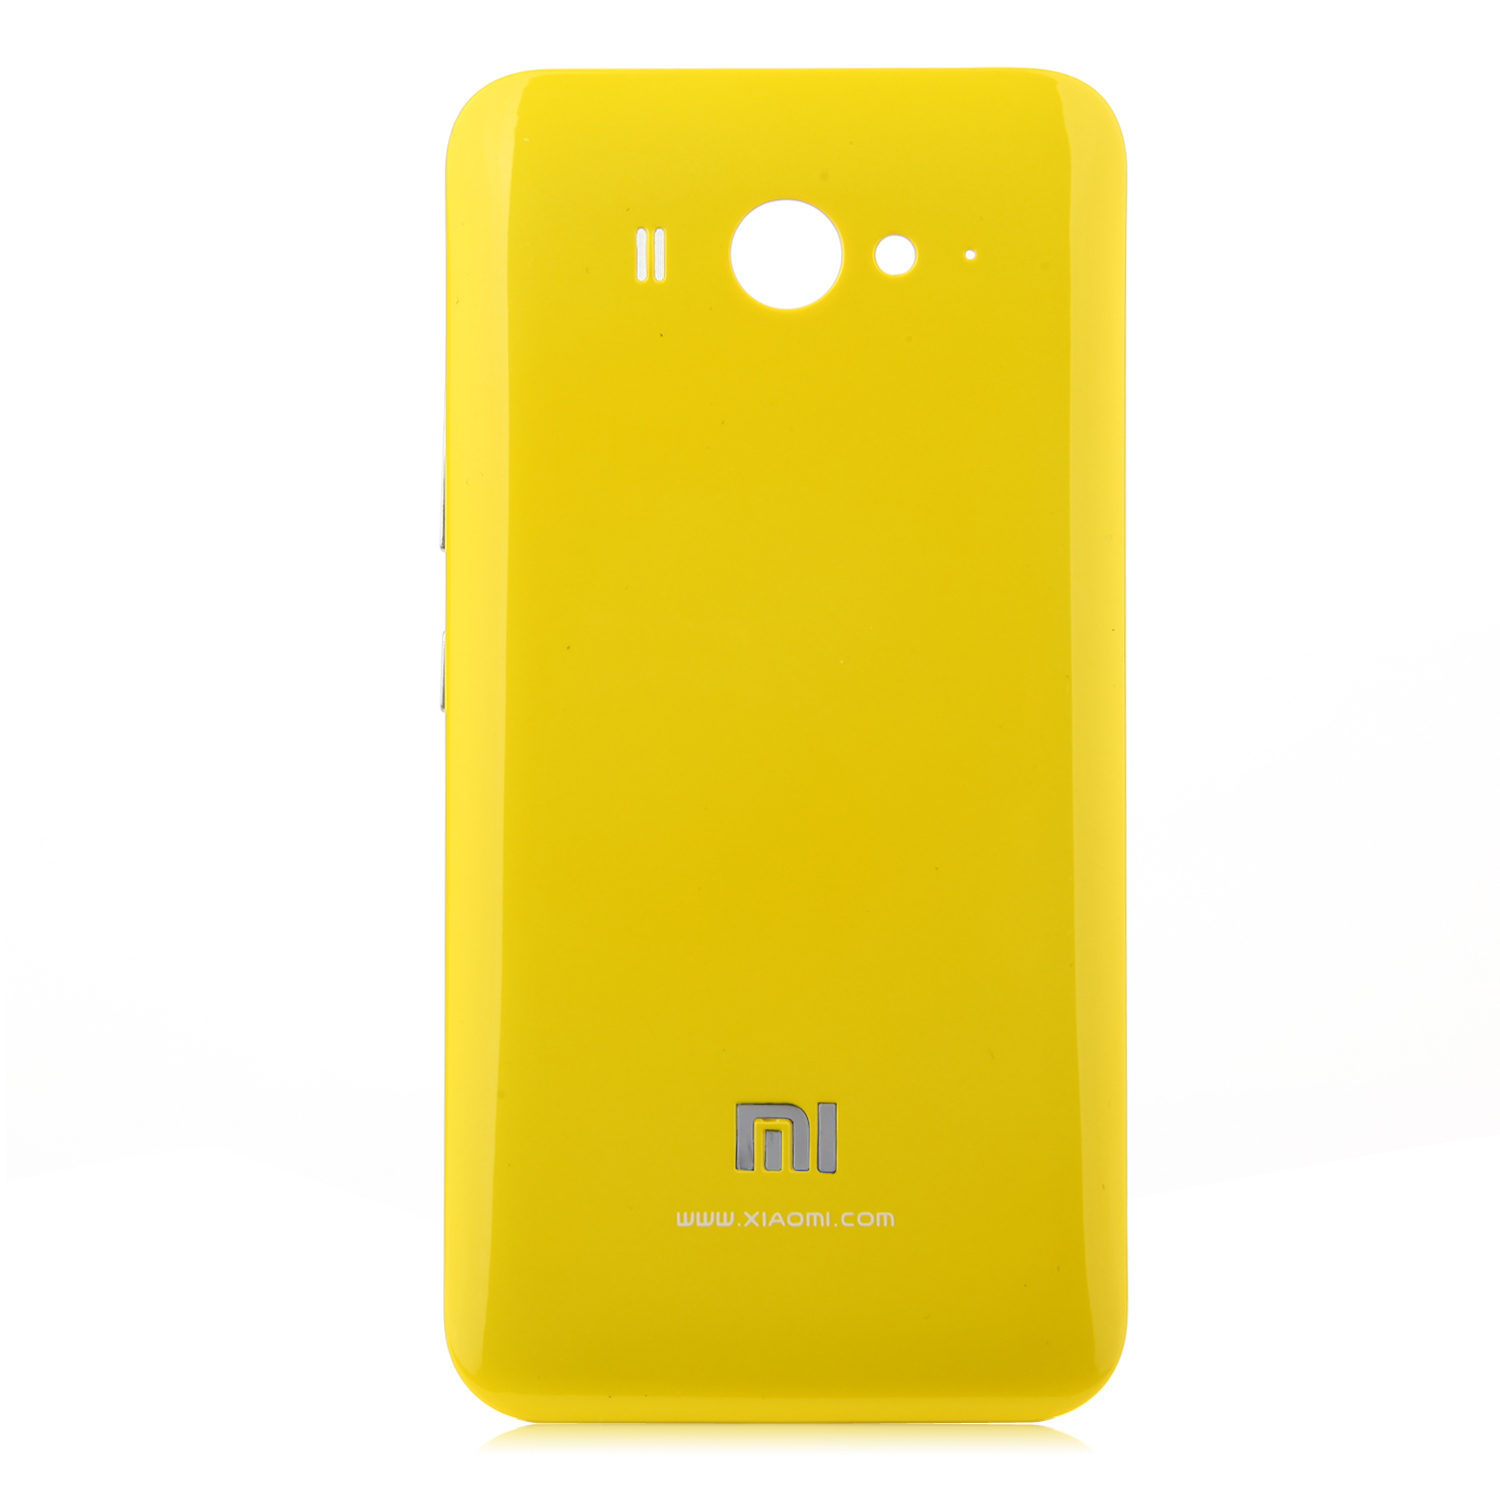 Replacement Battery Cover Back Case for XIAOMI 2S Smartphone Yellow